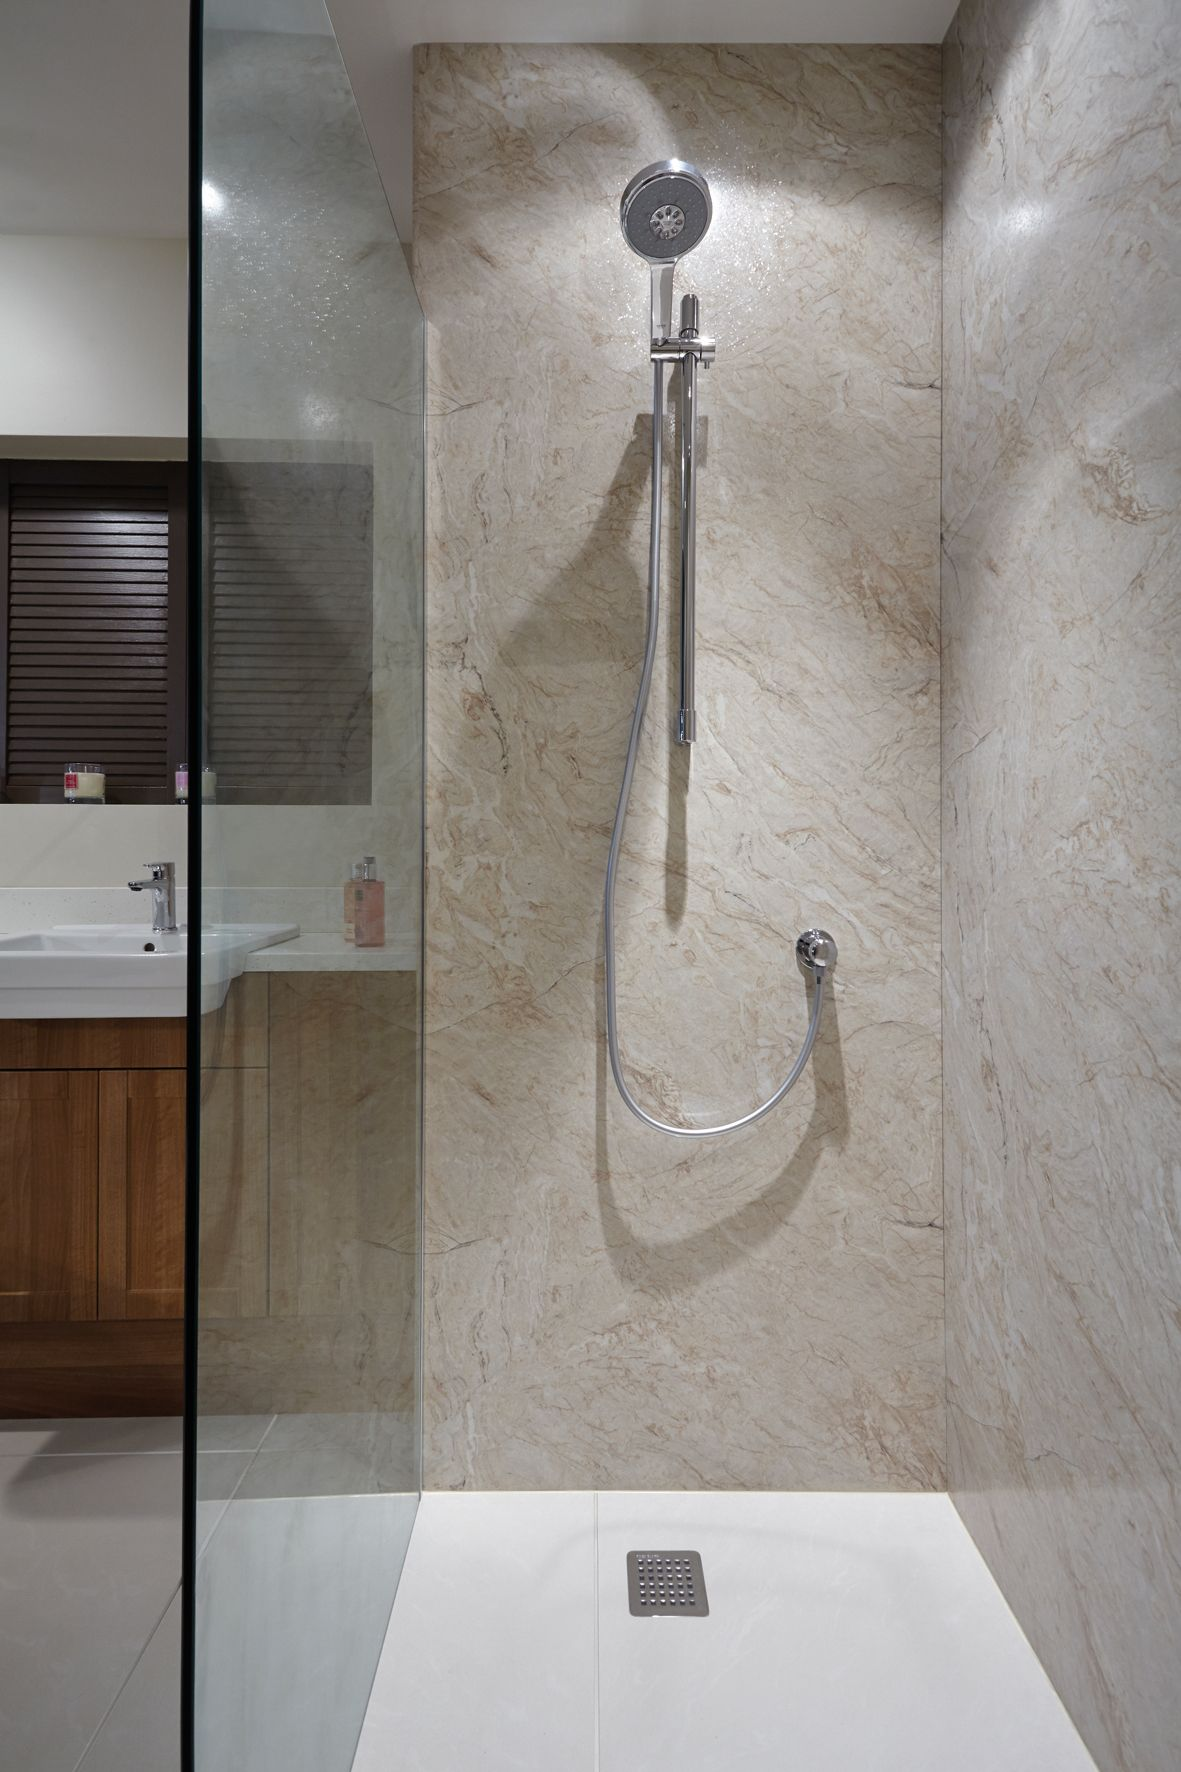 Nuance Laminate Panelling Is An Ideal Alternative To Tiling There Are No Grout Lines To Scrub With Images Bathroom Shower Panels Shower Wall Panels Bathroom Shower Walls